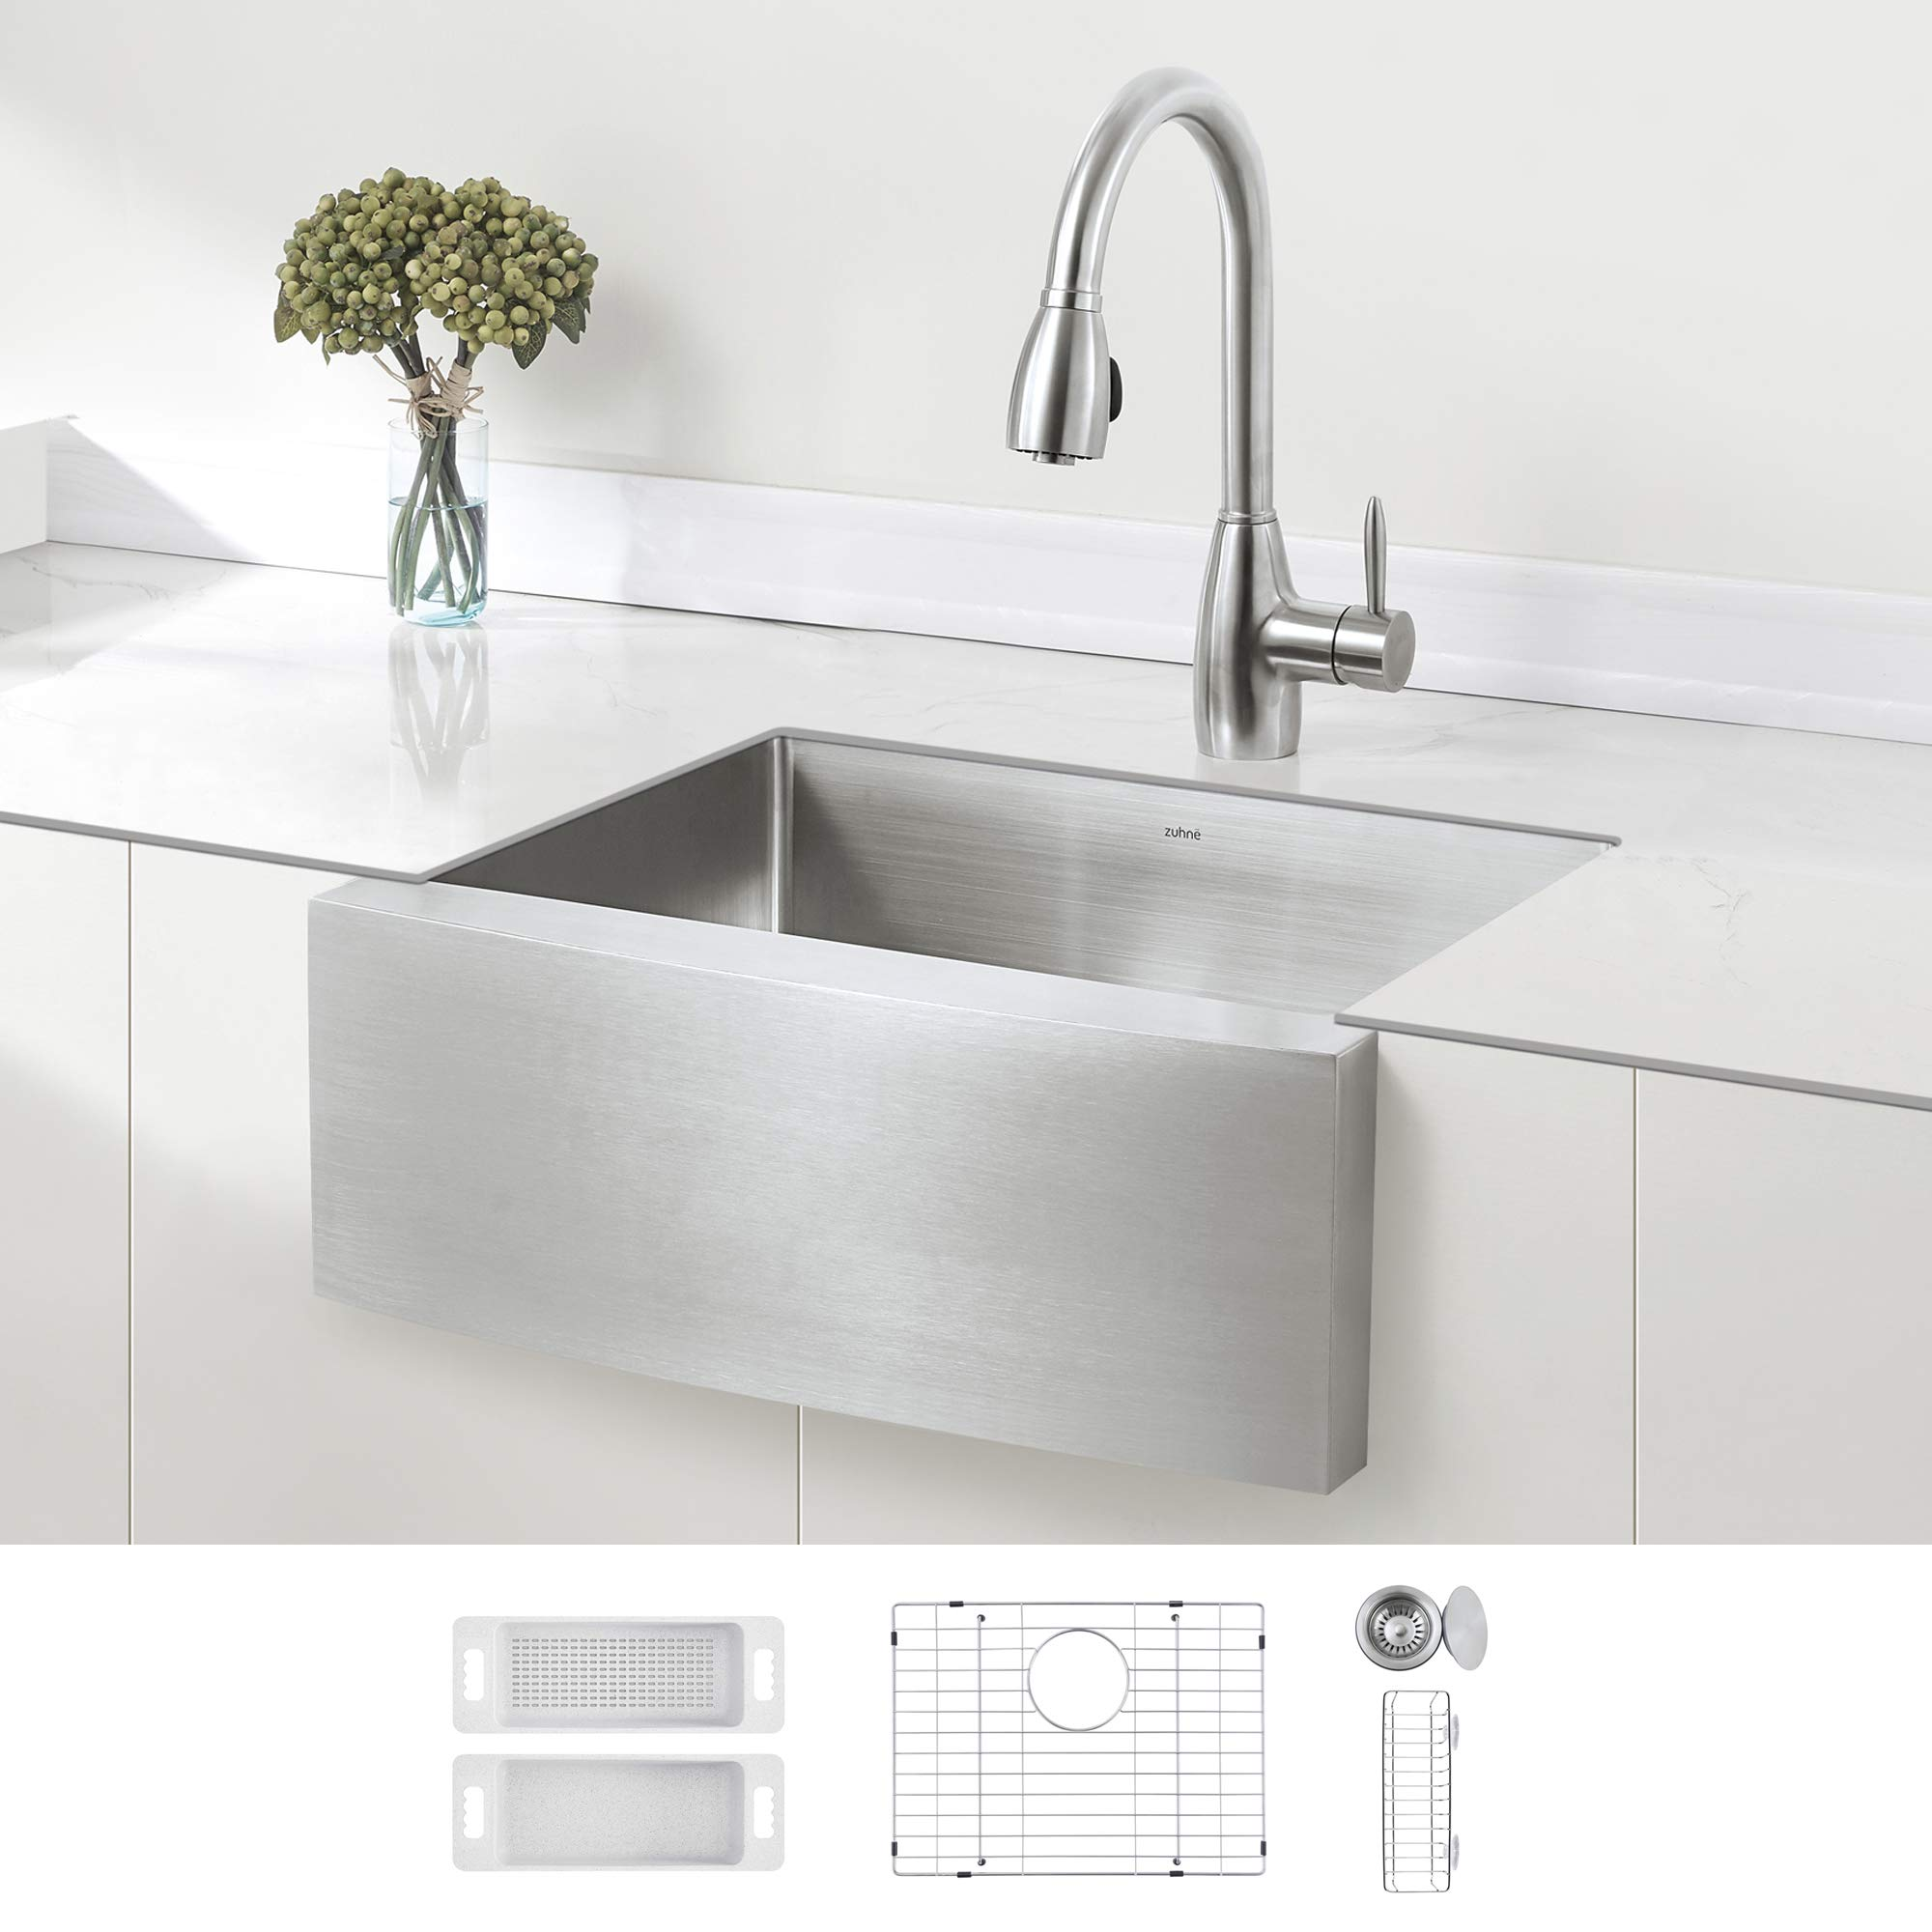 Zuhne Stainless Steel Farmhouse Kitchen Sink 24 Inch Apron Front 16 Gauge Small Bowl Amazon Com